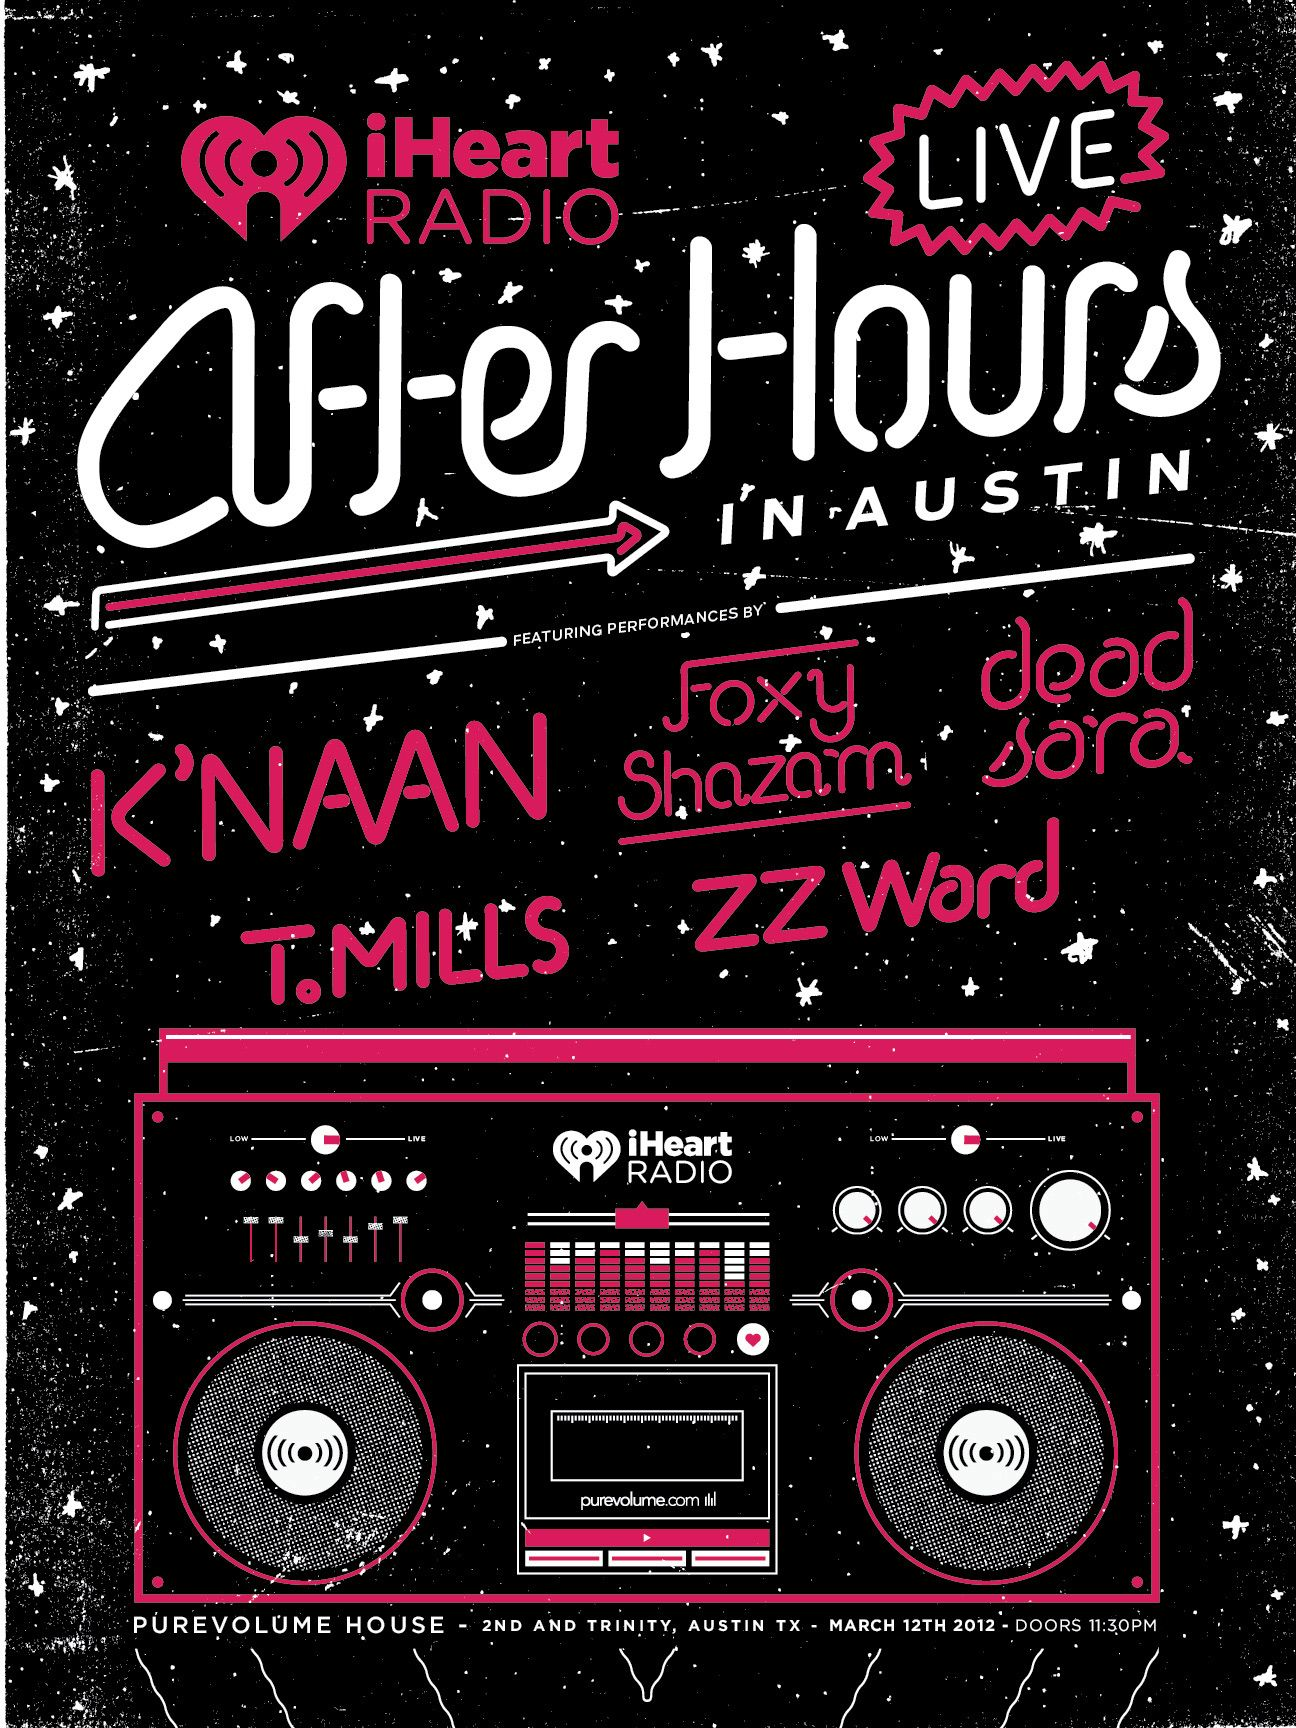 We'll be hosting a late night music event at #SXSW: iHeartRadio Live: After Hours at the BuzzMedia PureVolume.com House presented by iHeartRadio! The event will feature live performances from K'NAAN, Foxy Shazam, T.Mills, ZZ Ward and Dead Sara with live sets by DJ Skee.